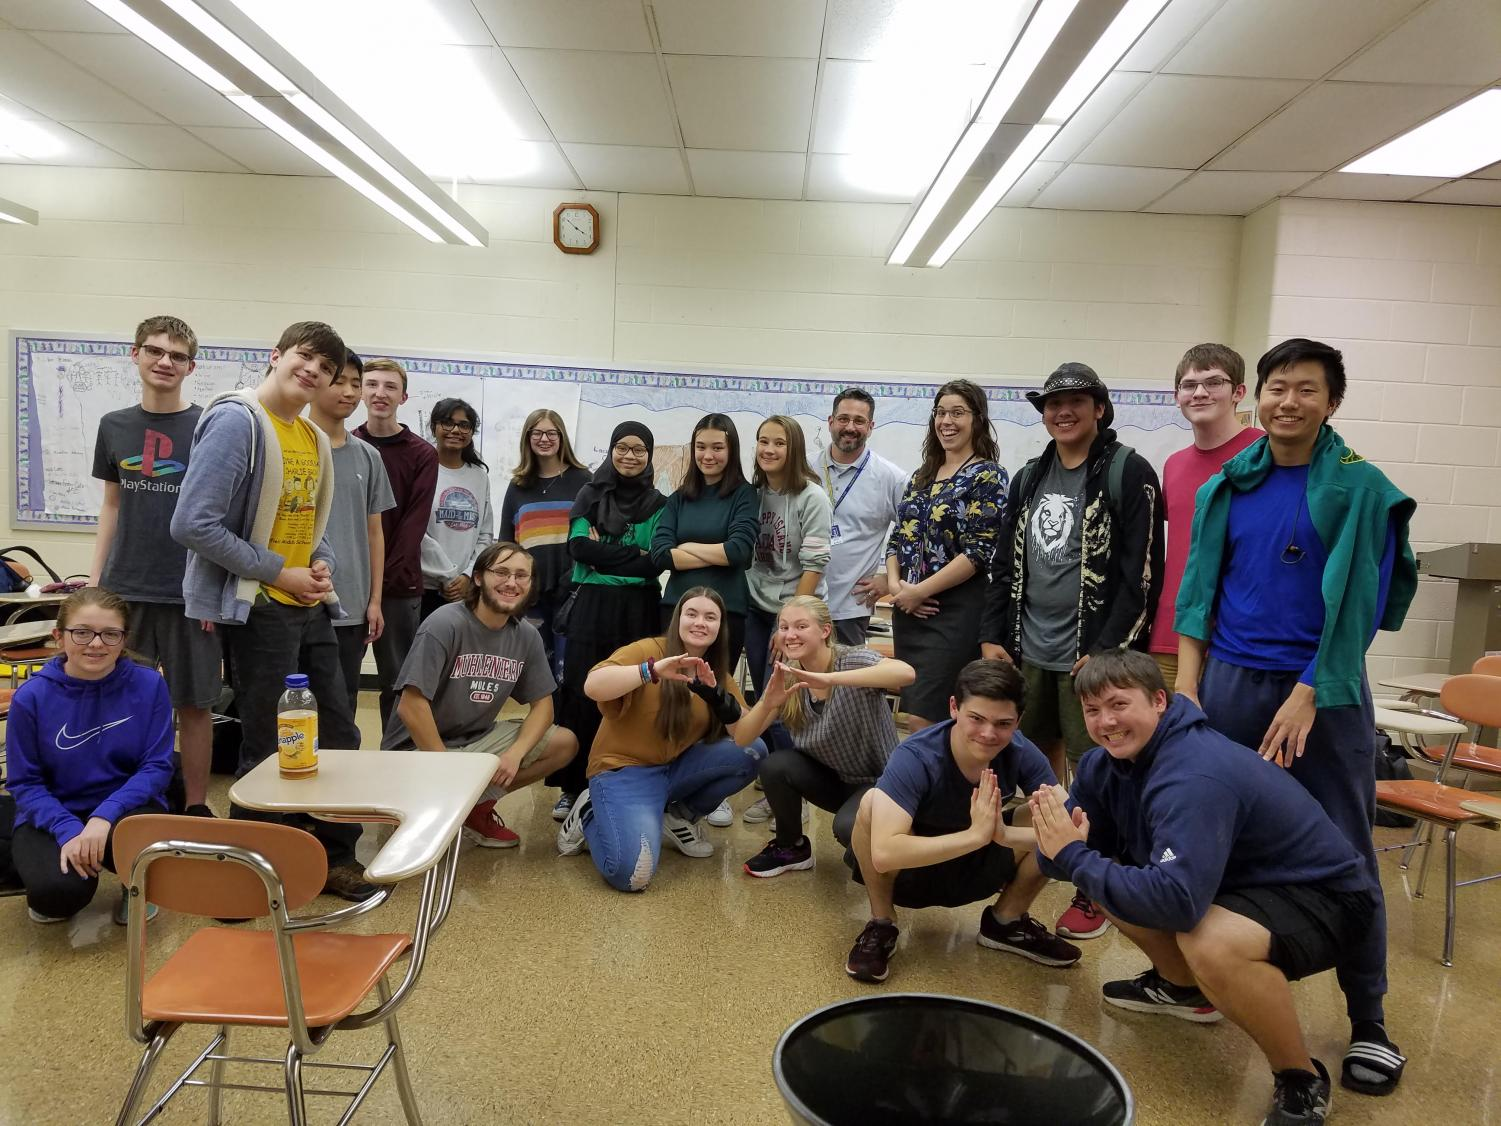 Latin club is just one of many fun new clubs debuting at North Penn this year.